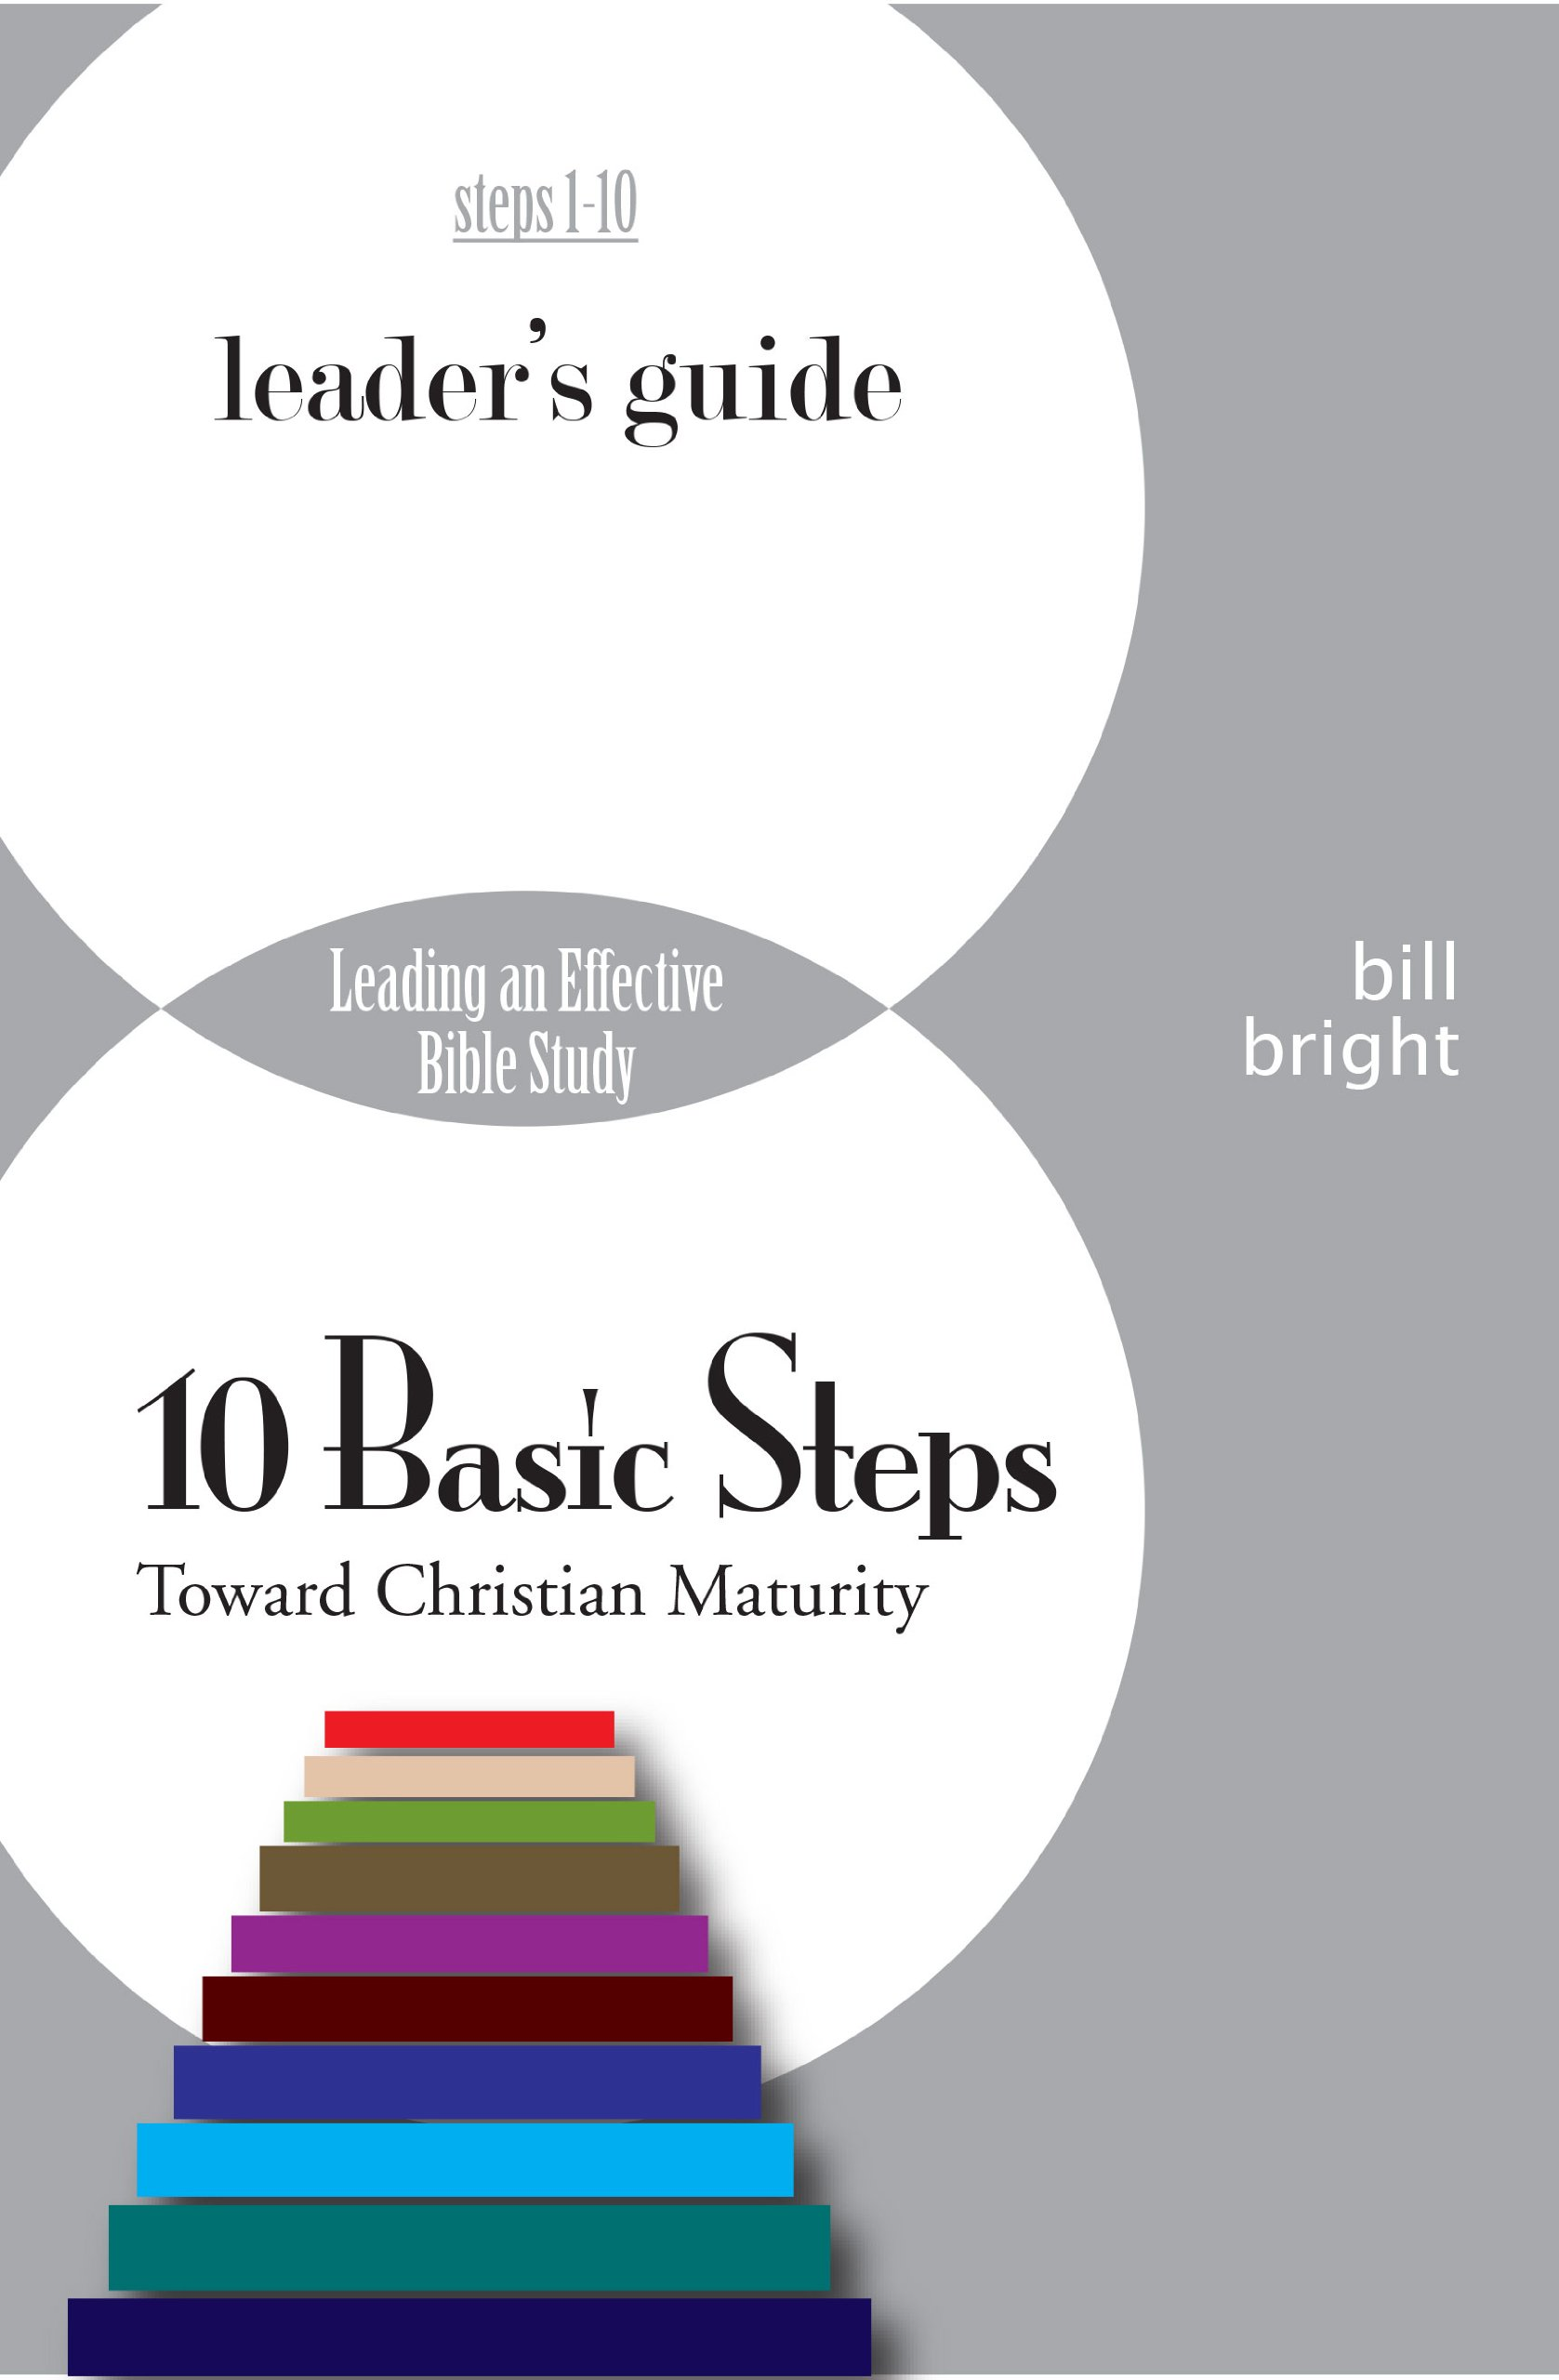 10 Basic Steps Toward Christian Maturity (Leader's Guide) (Ten Basic Steps Toward Christian Maturity) PDF